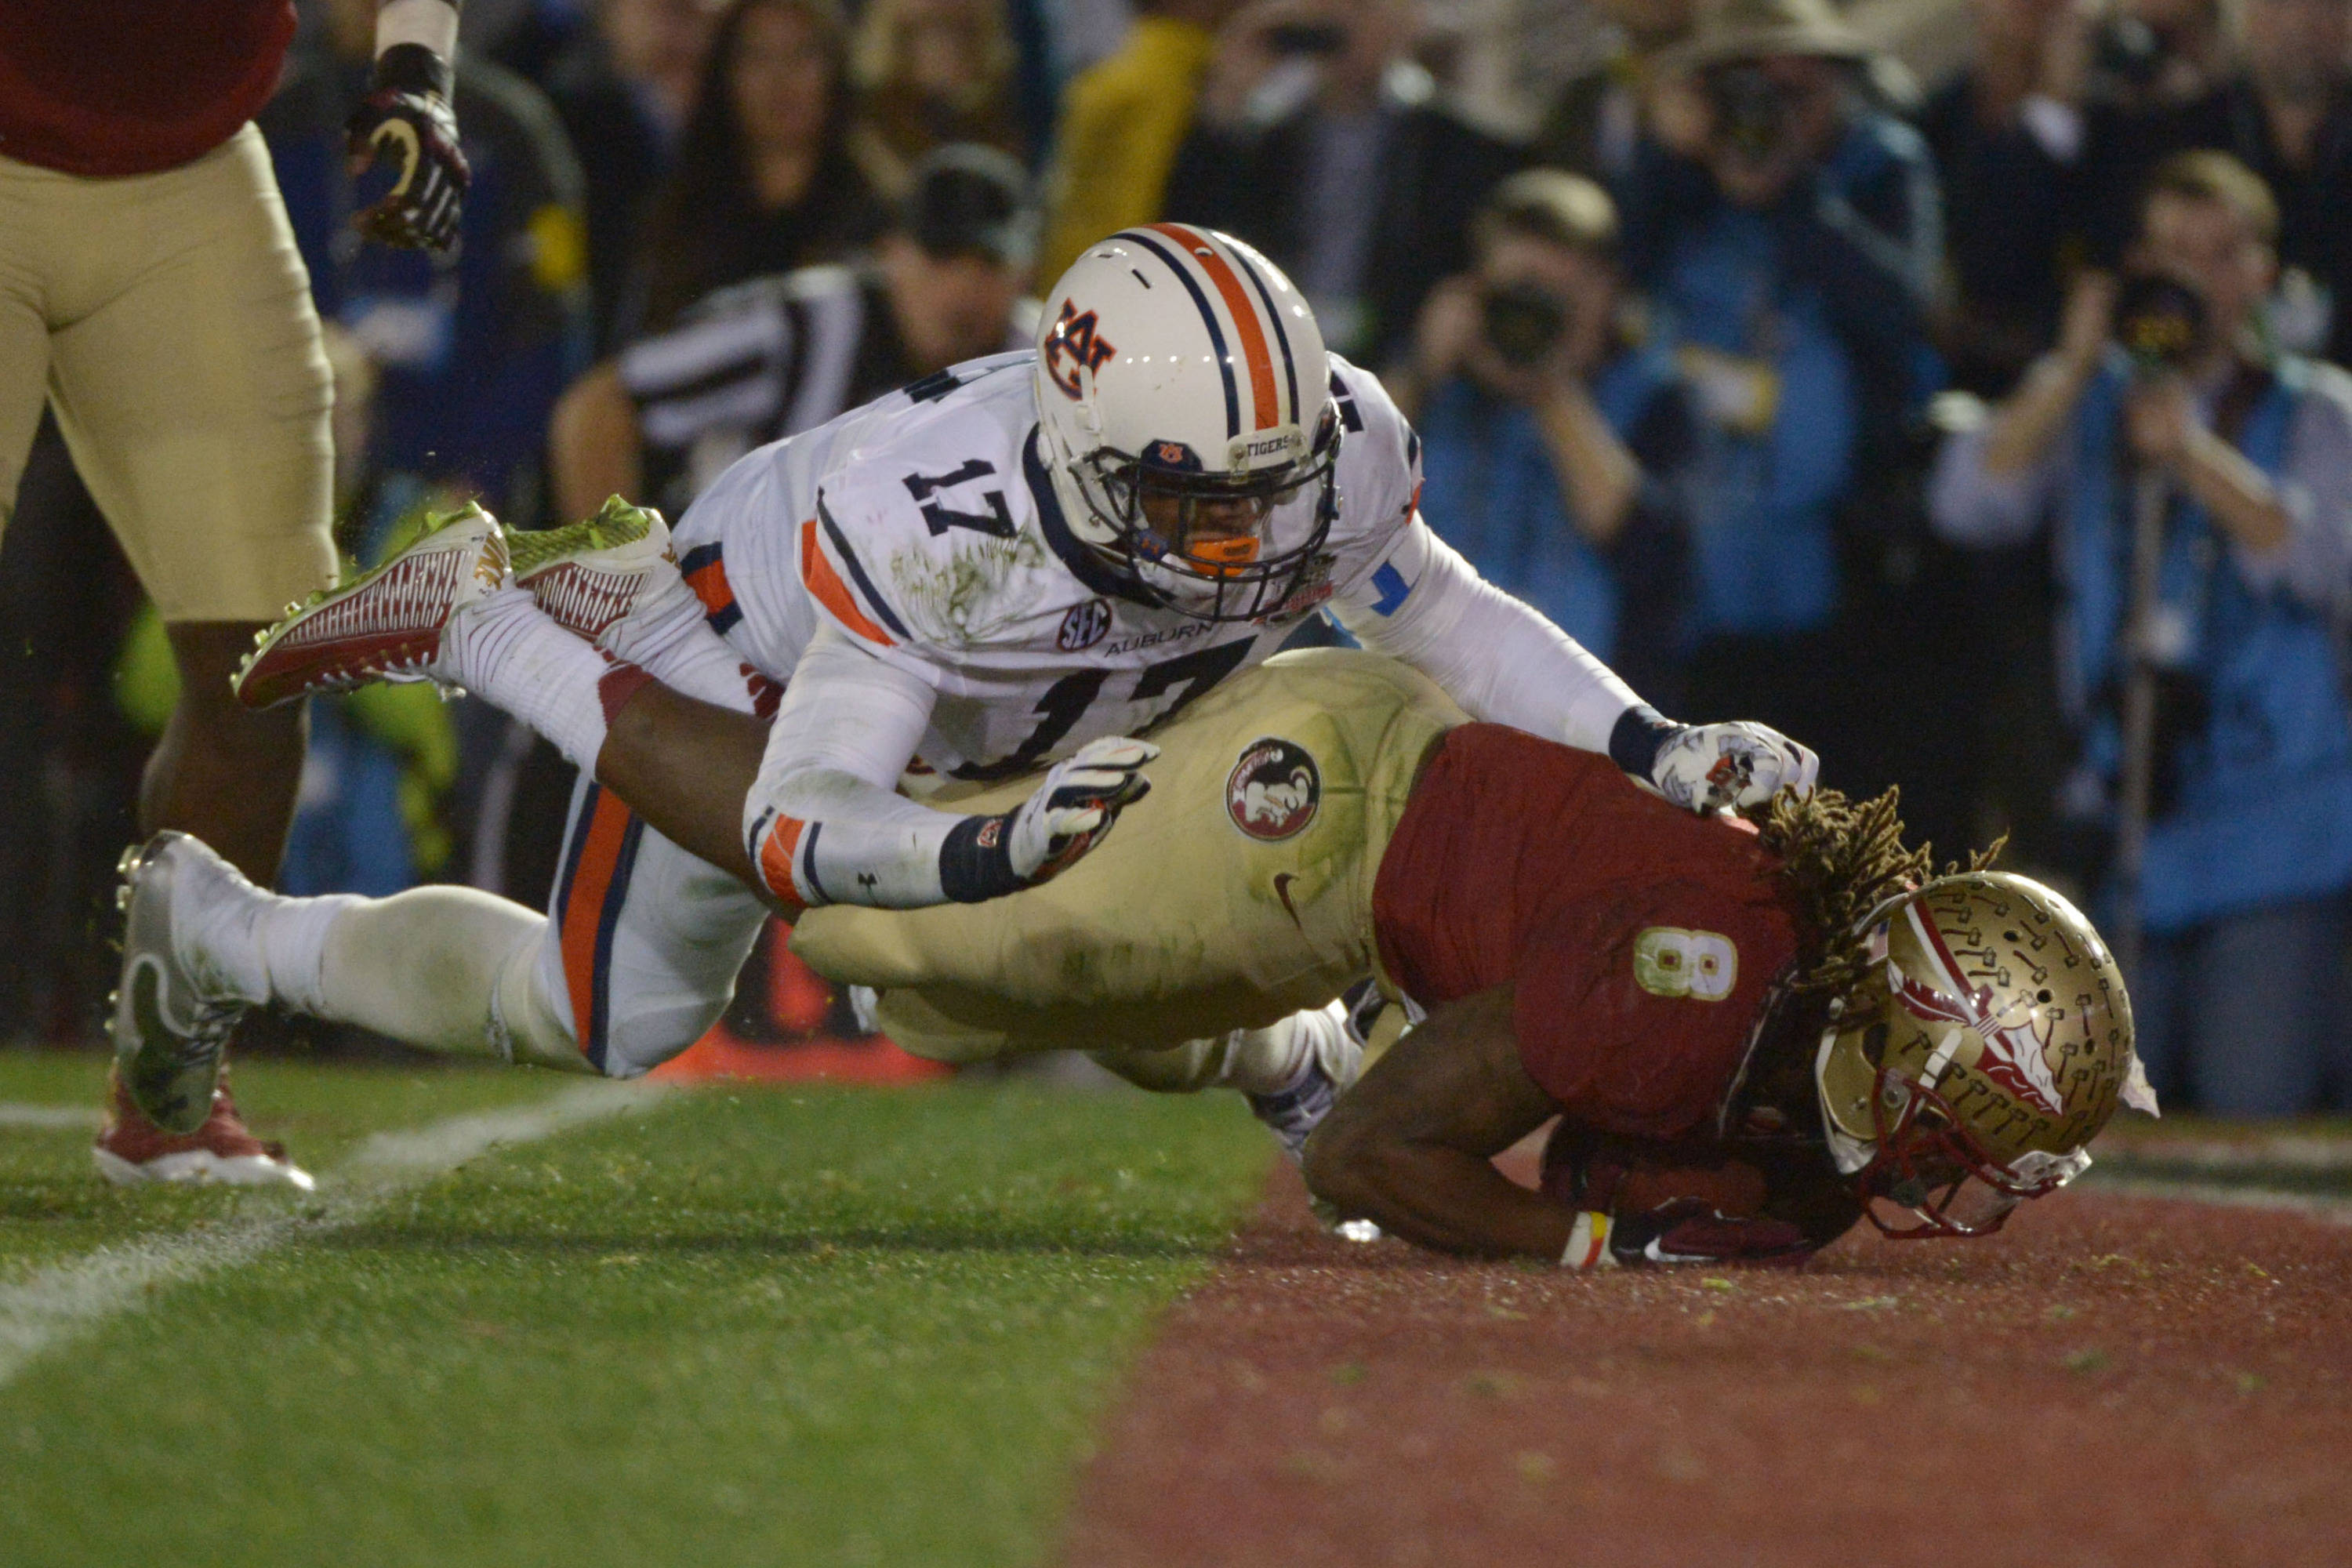 Jan 6, 2014; Pasadena, CA, USA; Florida State Seminoles running back Devonta Freeman (8) scores a touchdown against Auburn Tigers linebacker Kris Frost (17) during the first half of the 2014 BCS National Championship game at the Rose Bowl.  Mandatory Credit: Kirby Lee-USA TODAY Sports